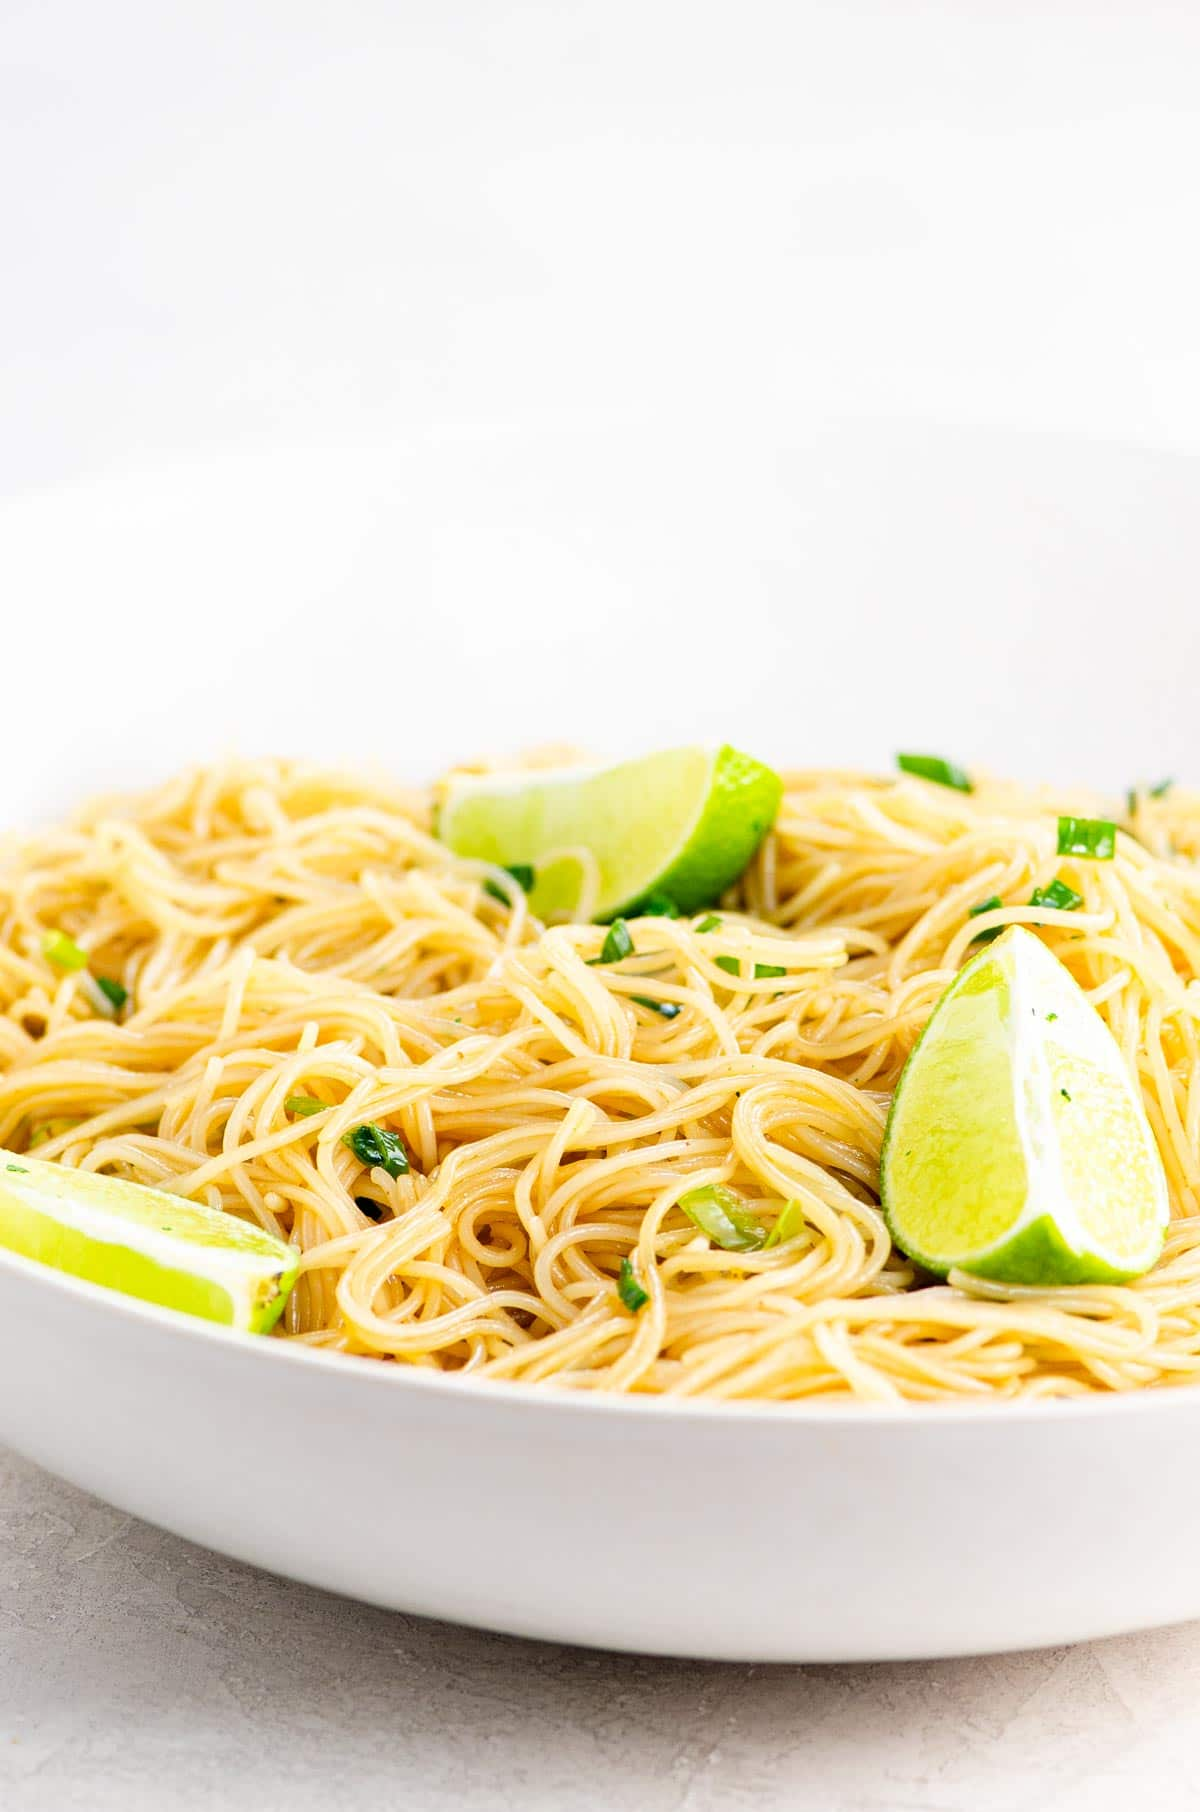 Vegan rice noodles in a white bowl